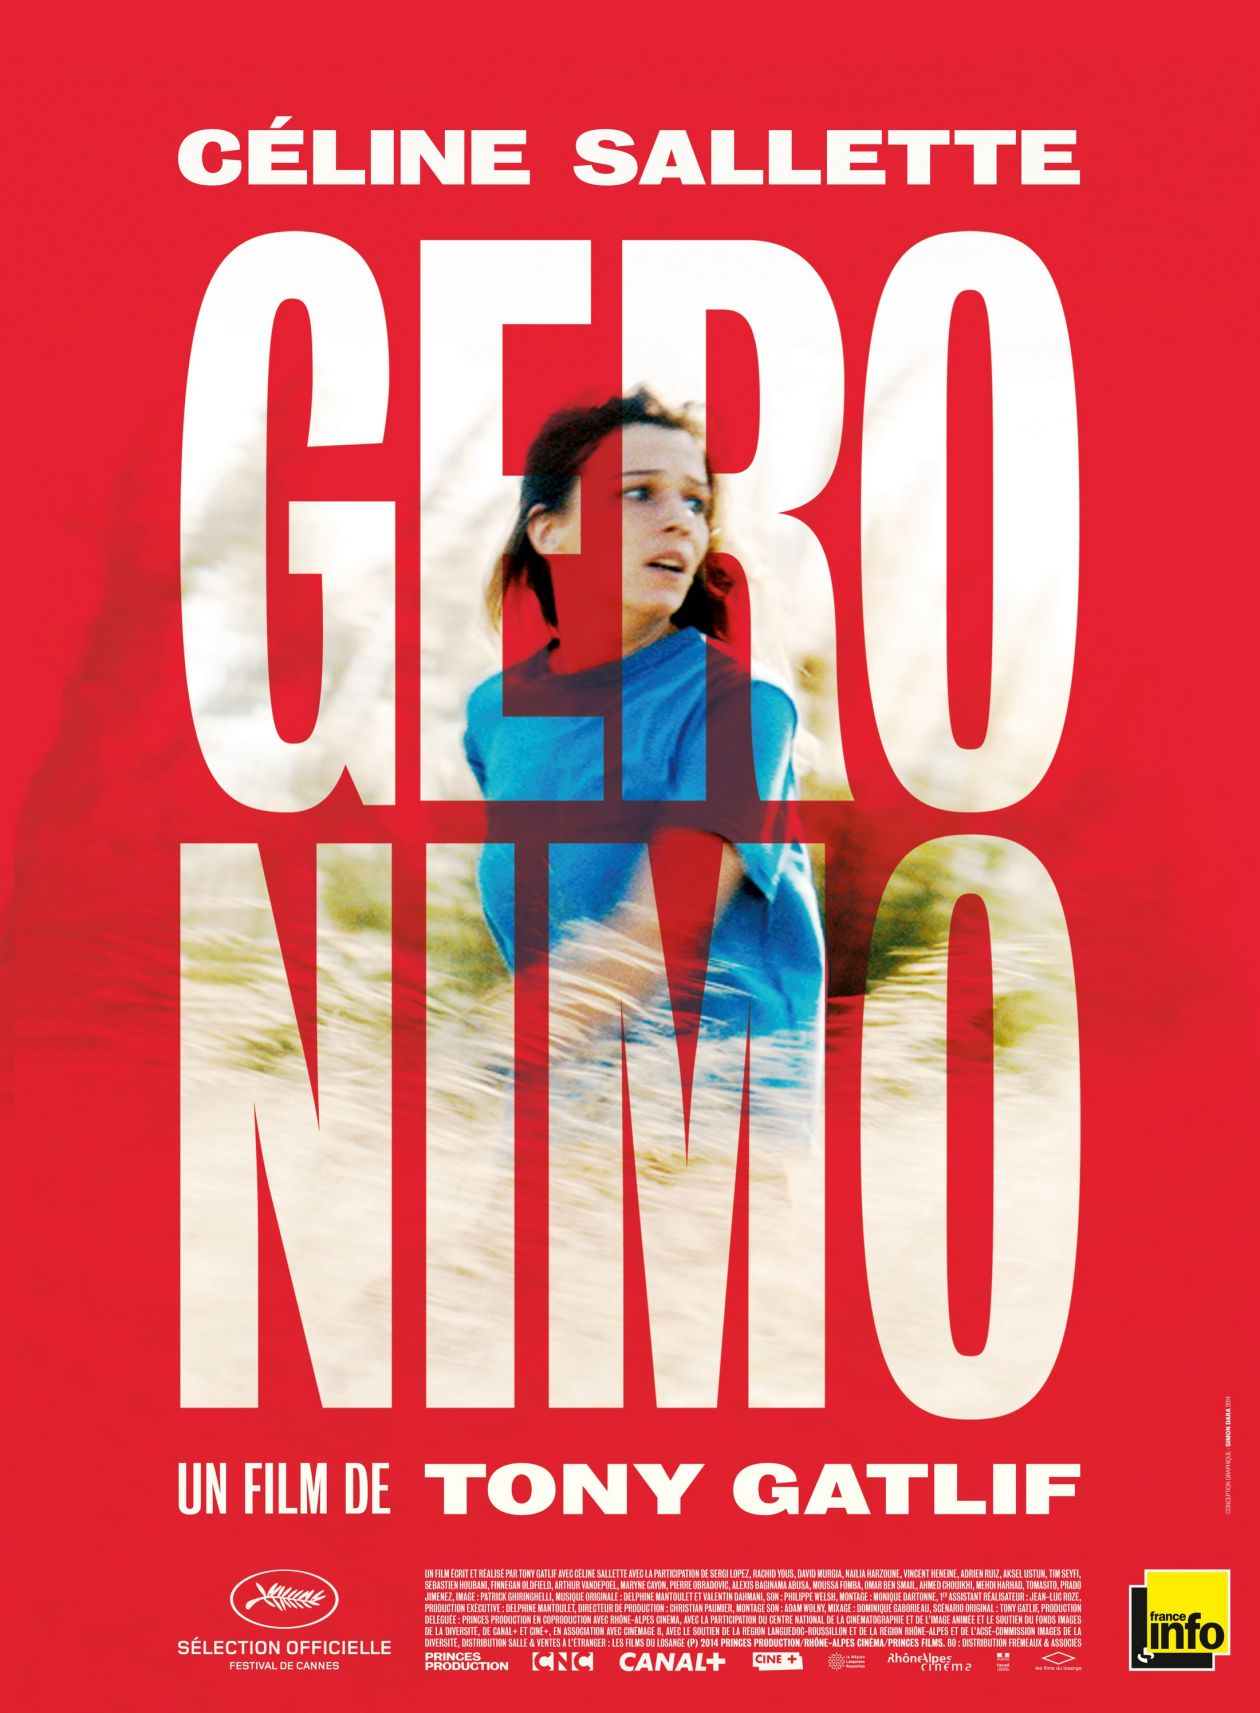 Céline Sallette French actress / GERONIMO / Tony Gatlif 2014 / Movie Poster / Affiche film